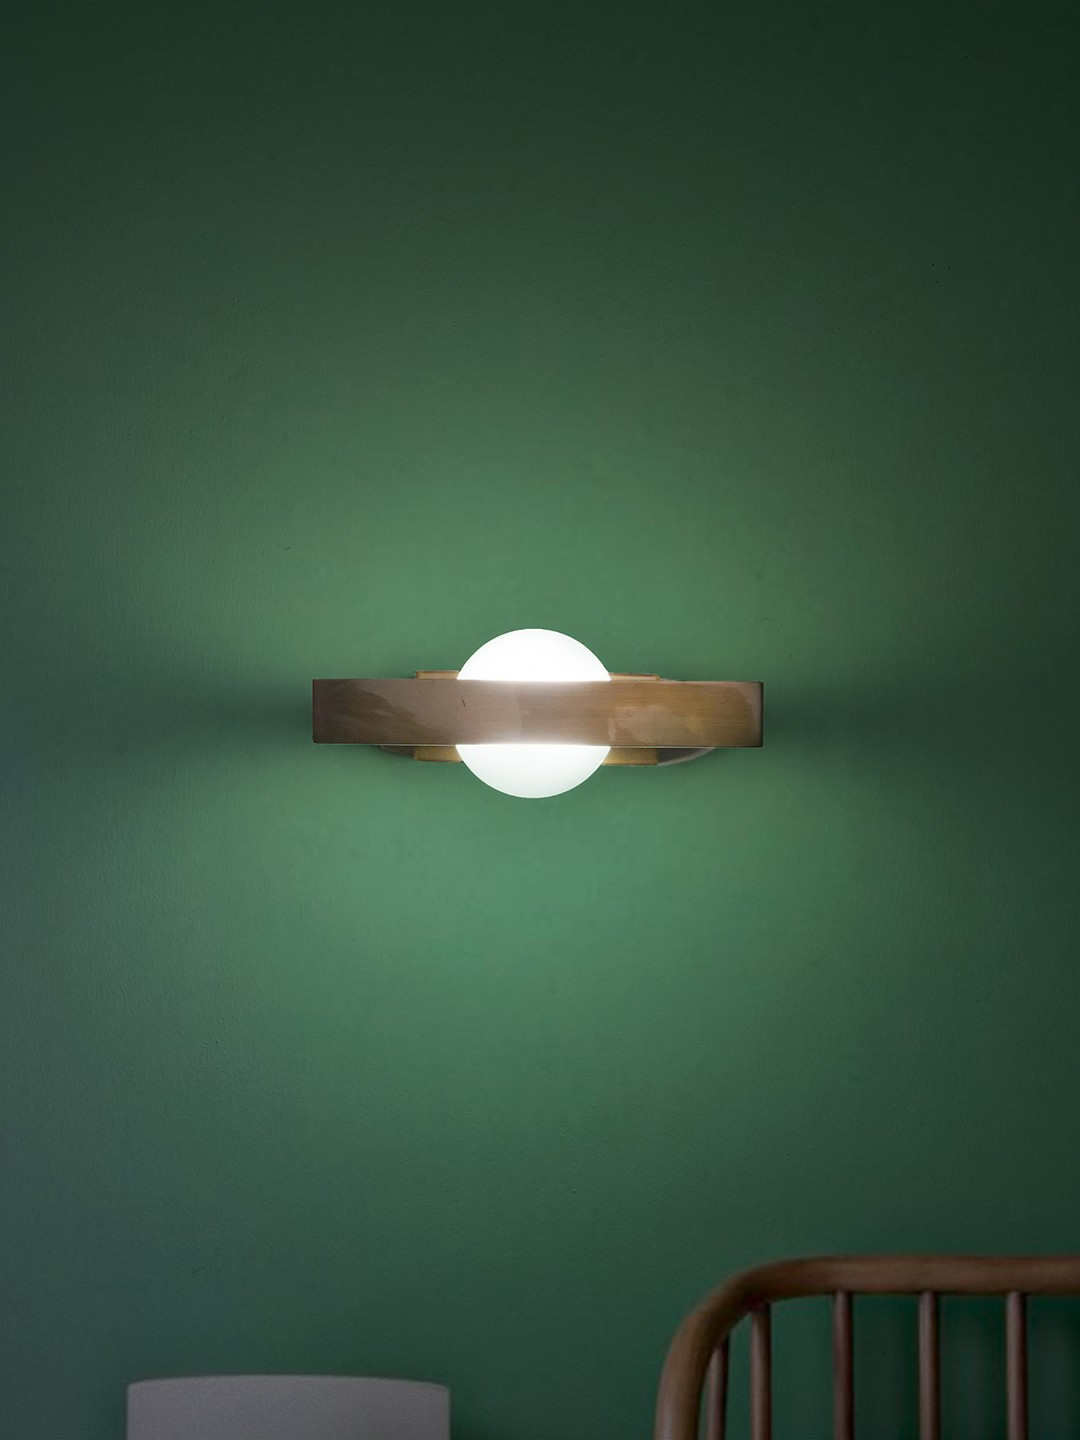 Modern LED Antique Brass Finish Wall Light with Brass Frame Wall Lamp in Contemporary Style for Home and Office Decor